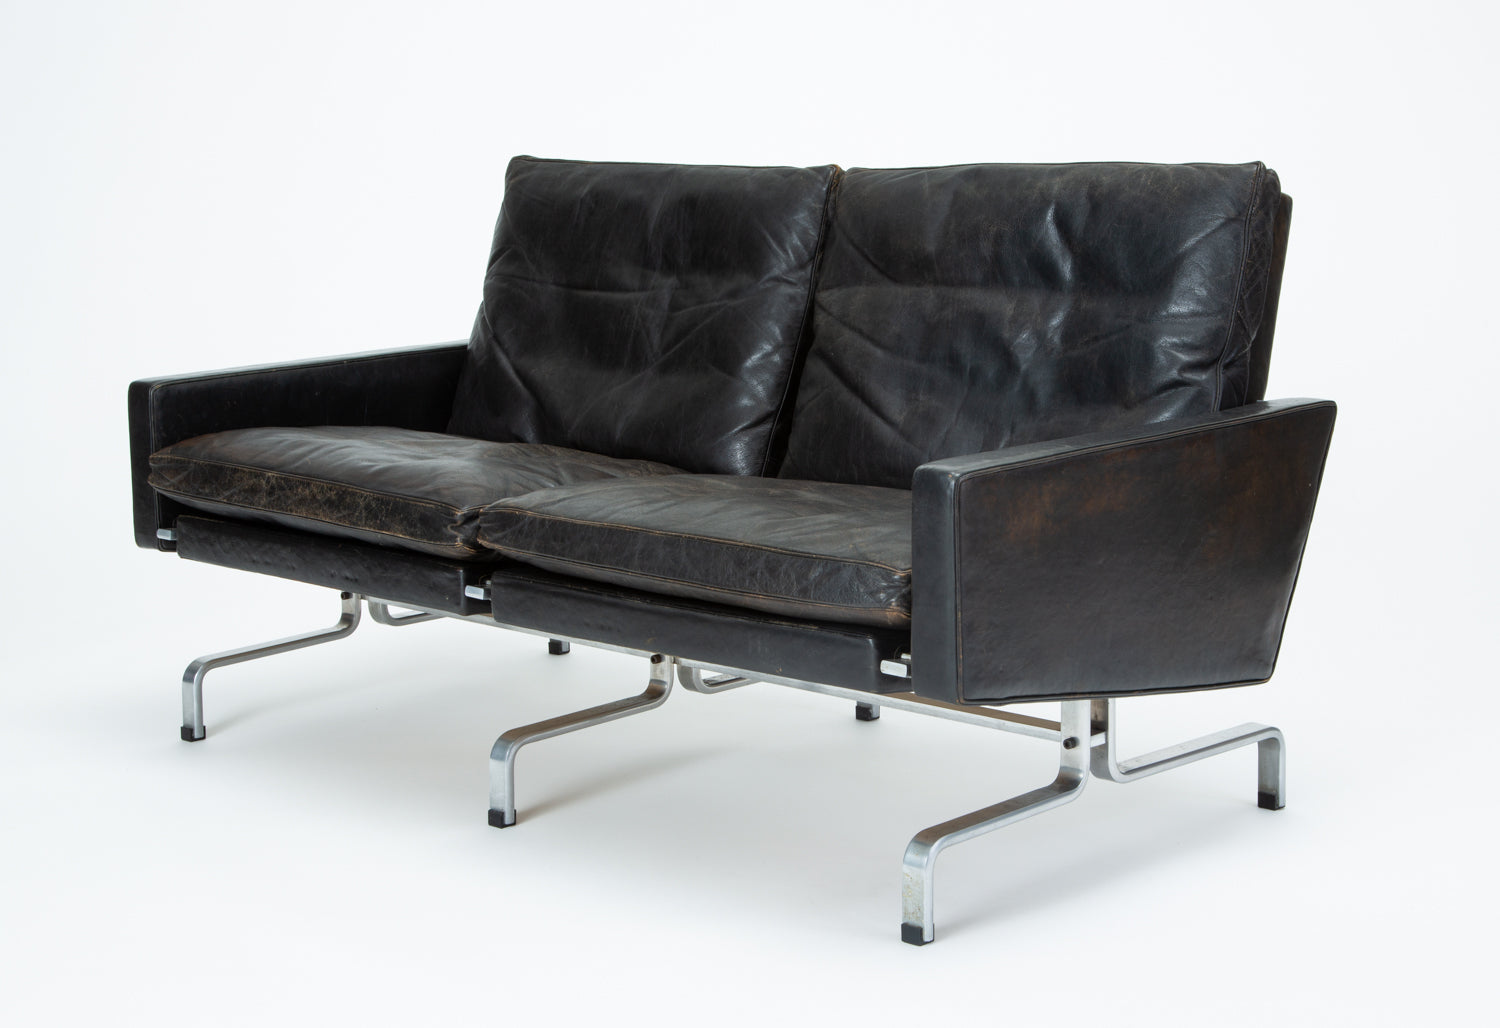 Poul Kjaerholm PK 31/2 Loveseat for E. Kold Christensen